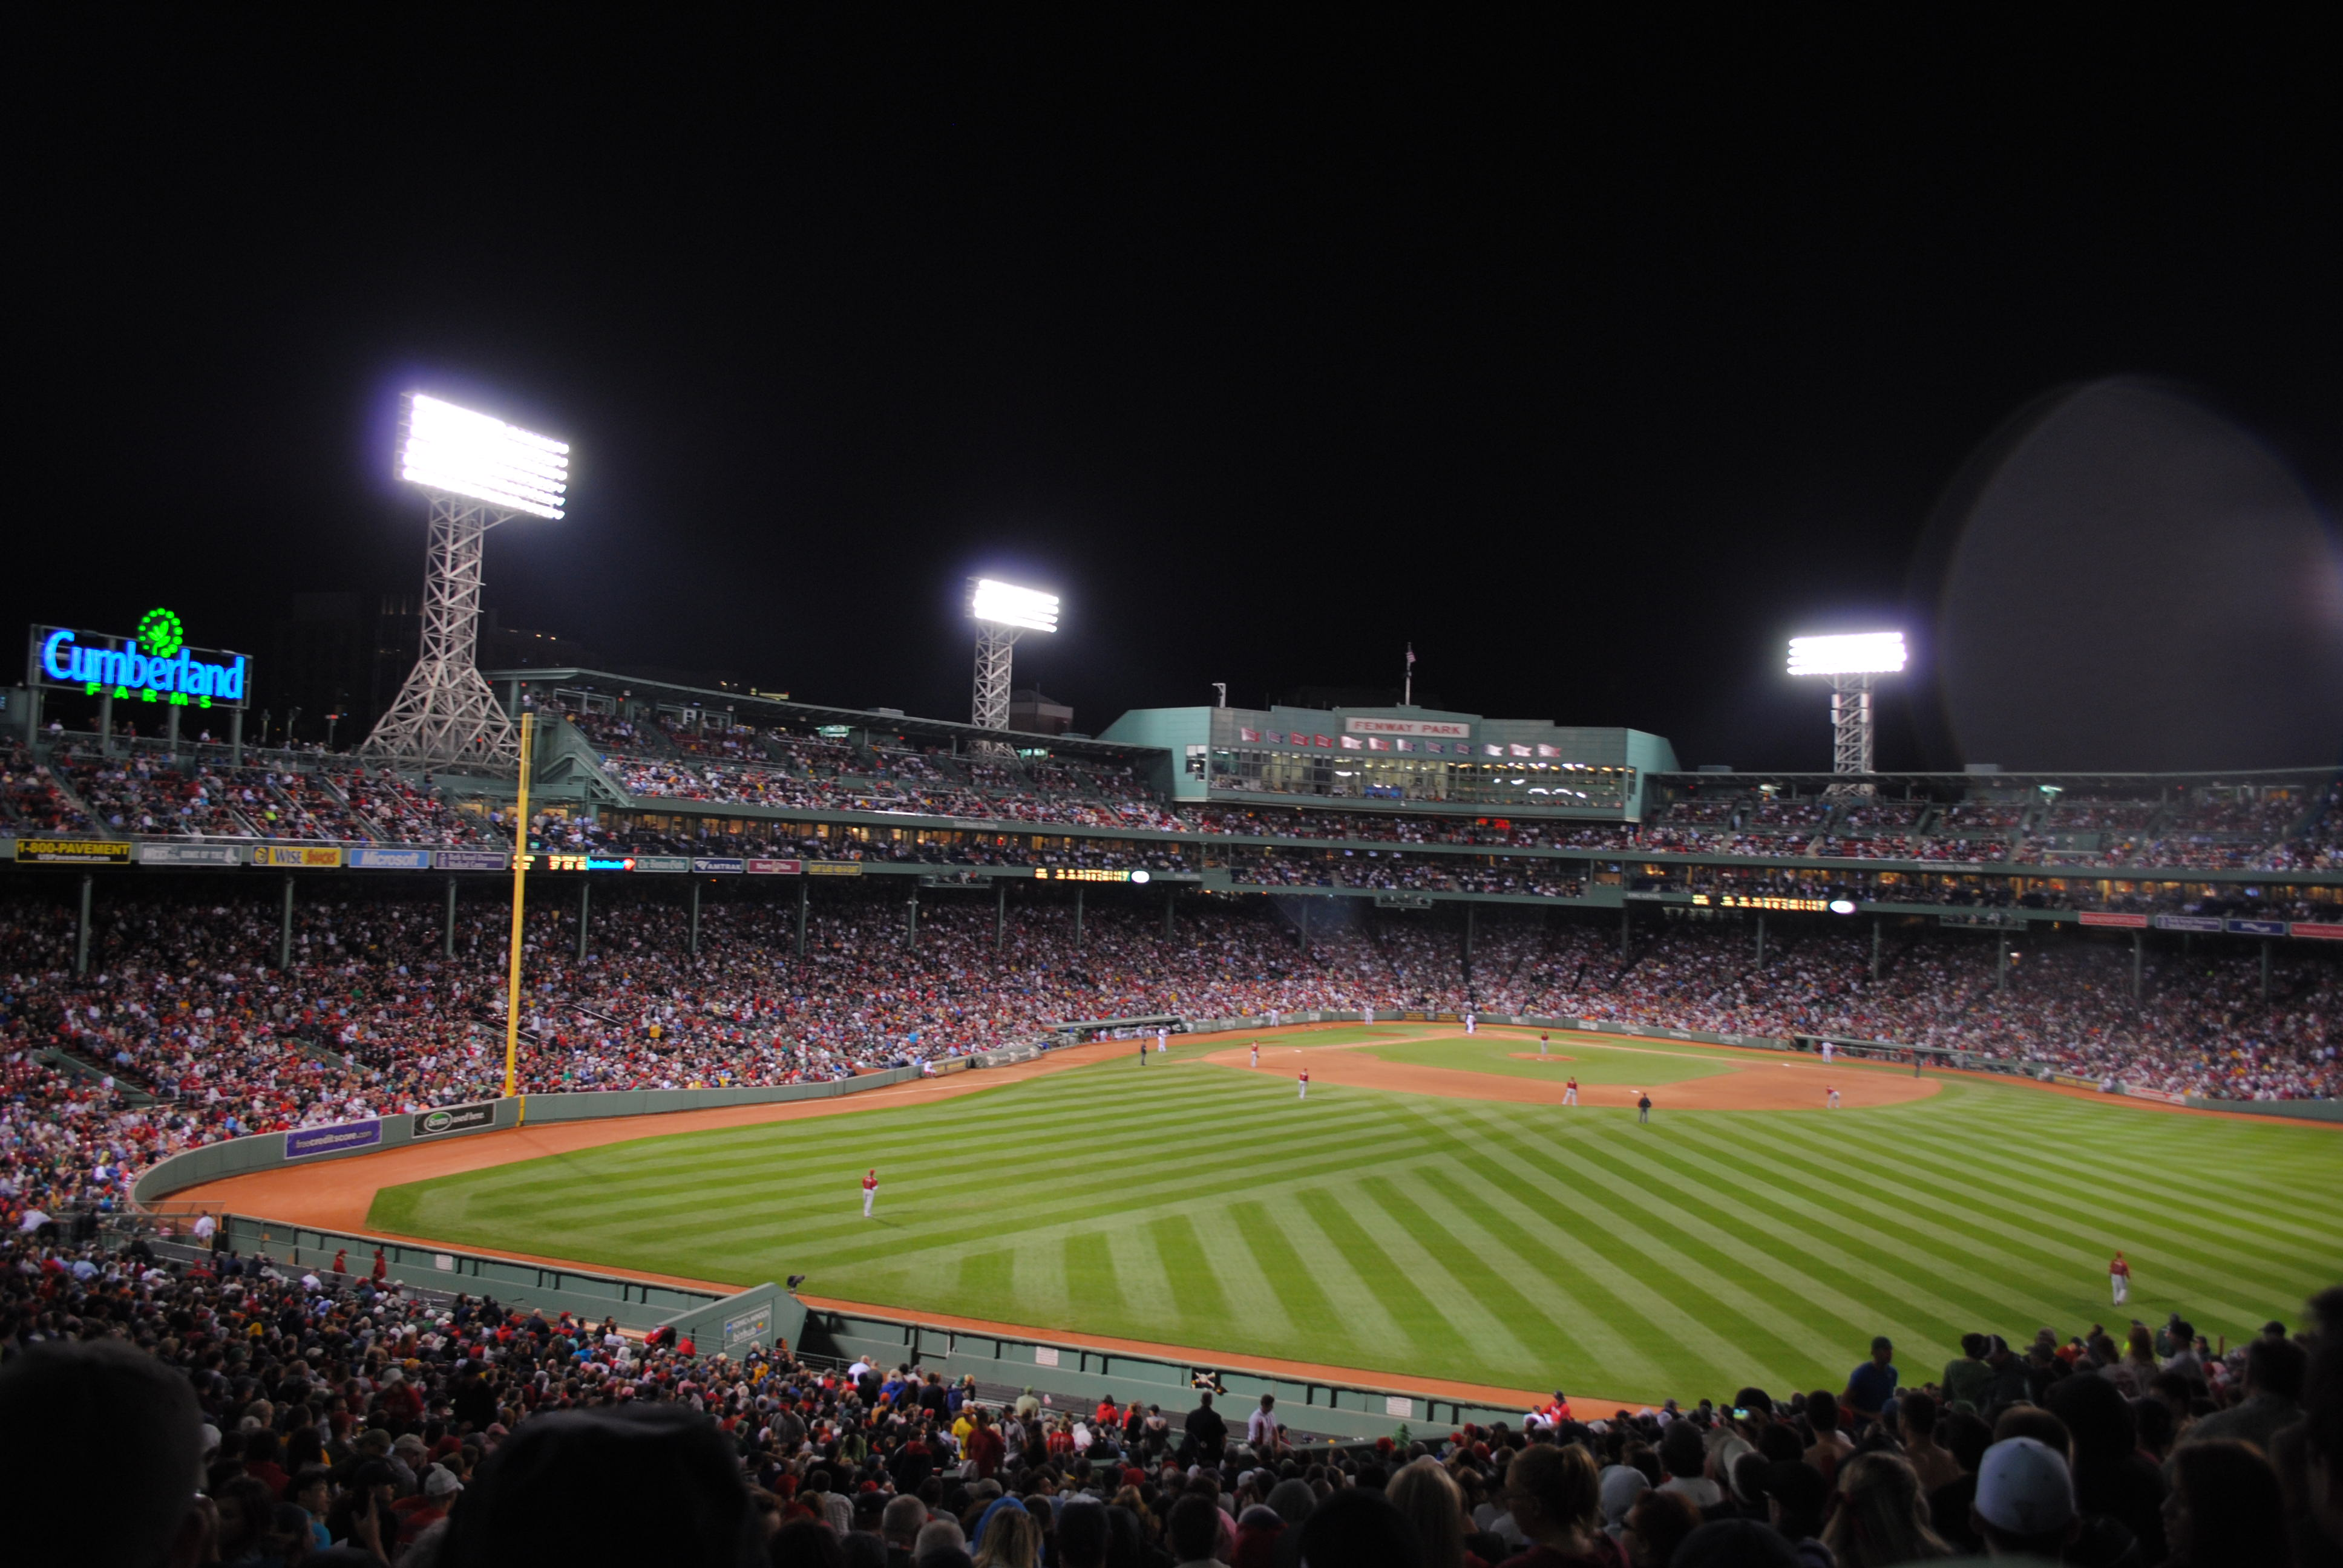 gallery for fenway park world series wallpaper